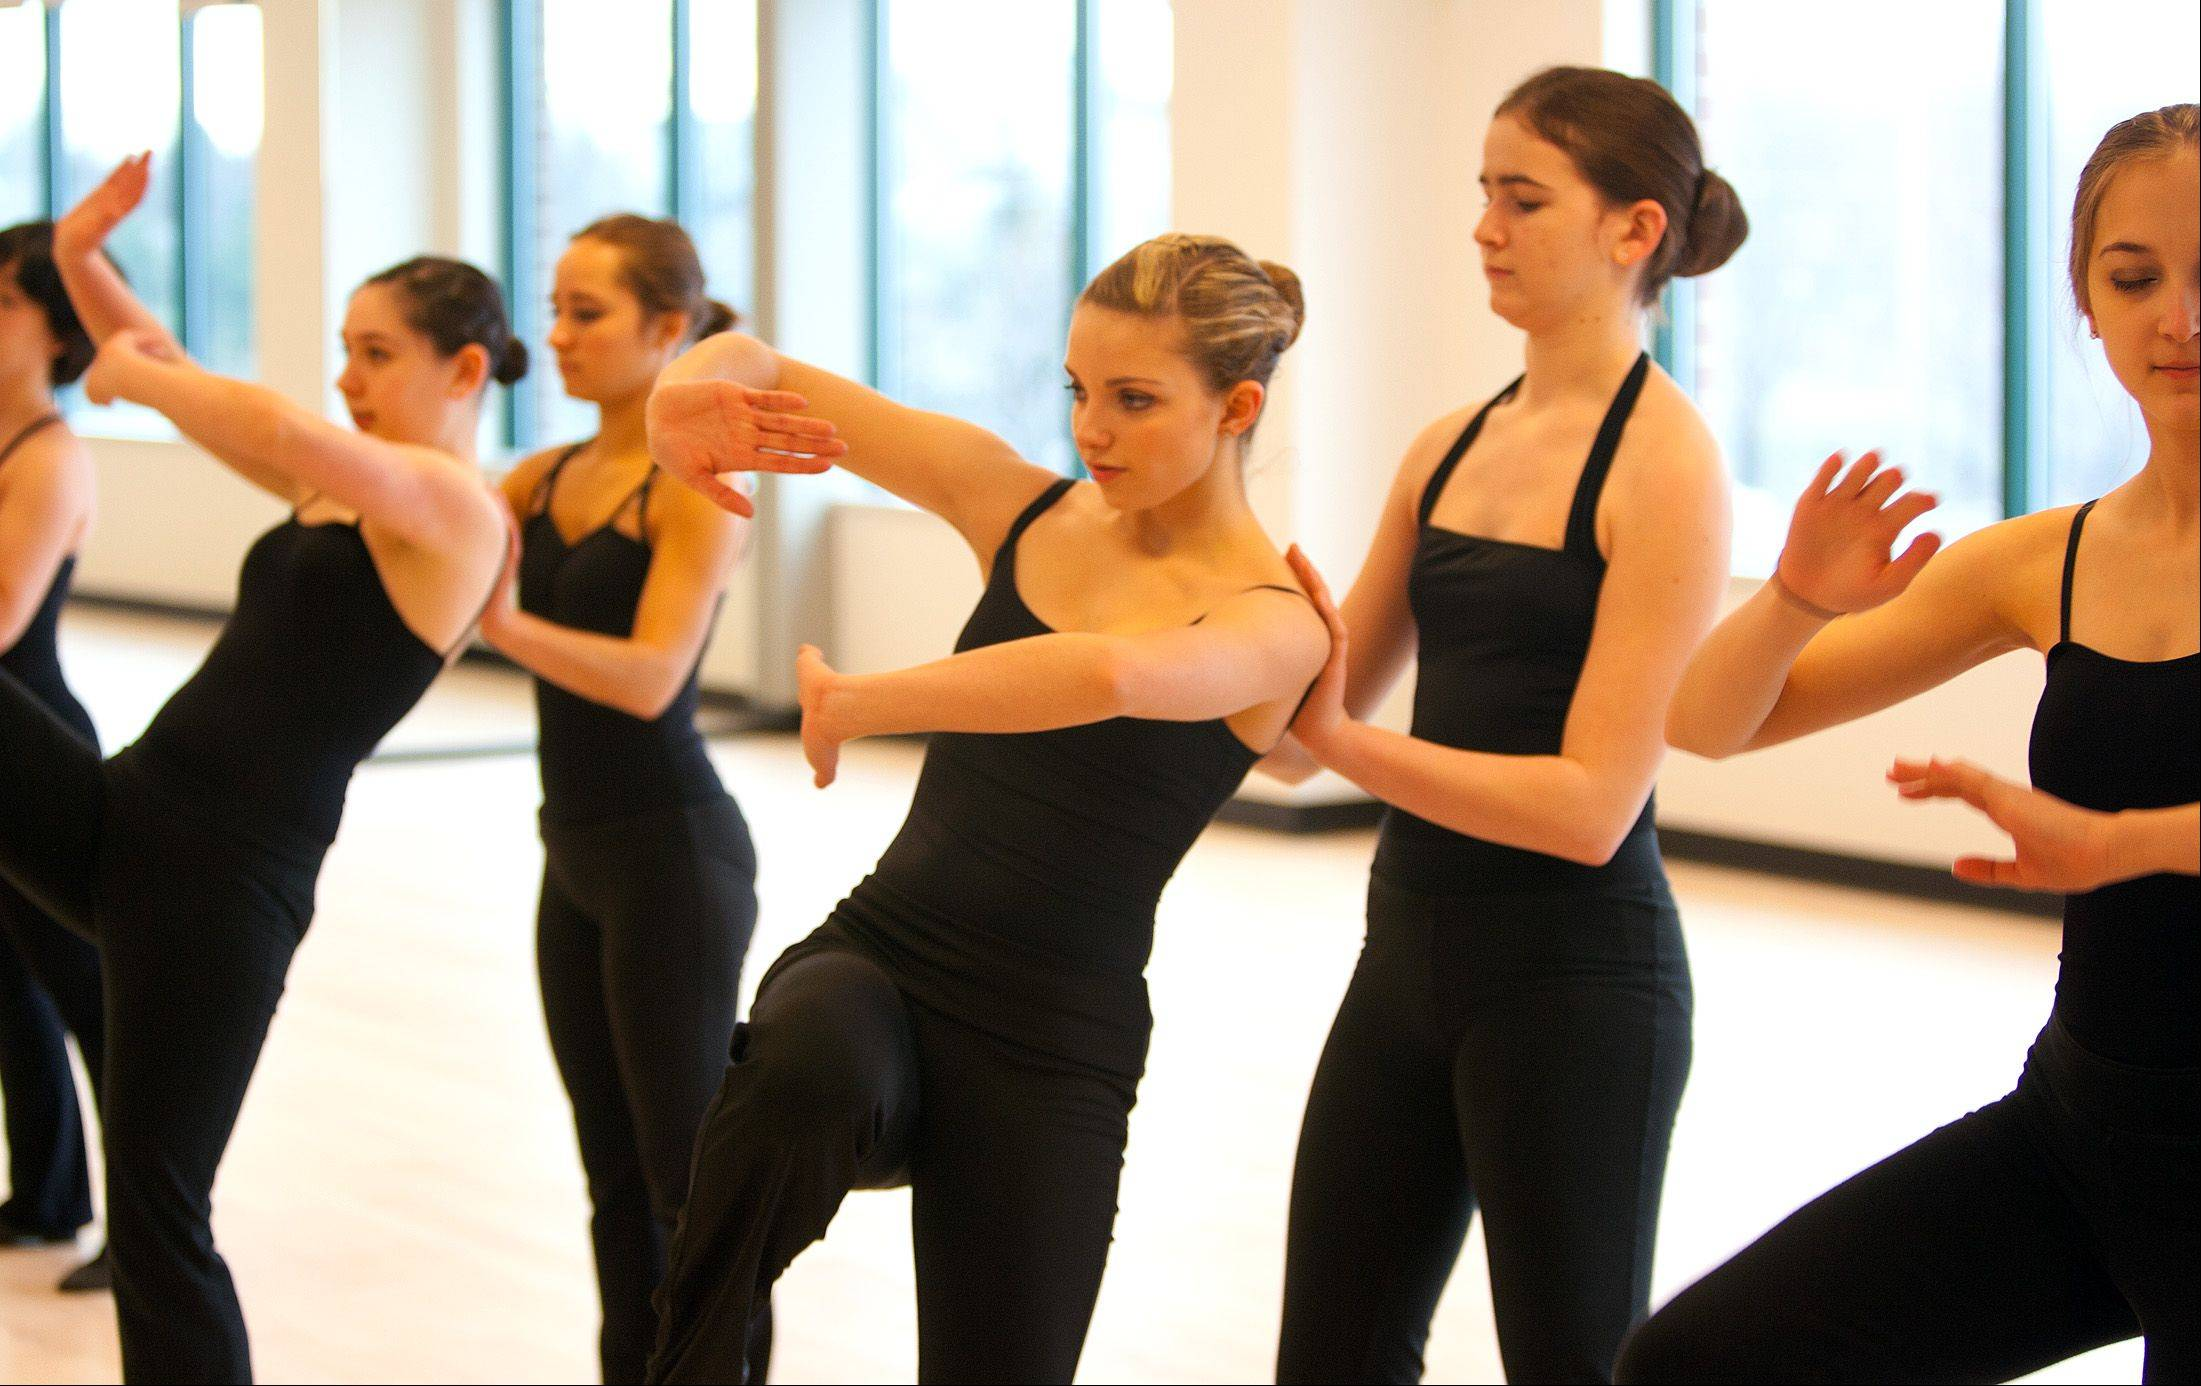 Benet Academy senior Lindsay Gloor, center, leads the �lan Dance Company in a performance Saturday as the Naperville Park District holds a grand opening at its new 95th Street Center.